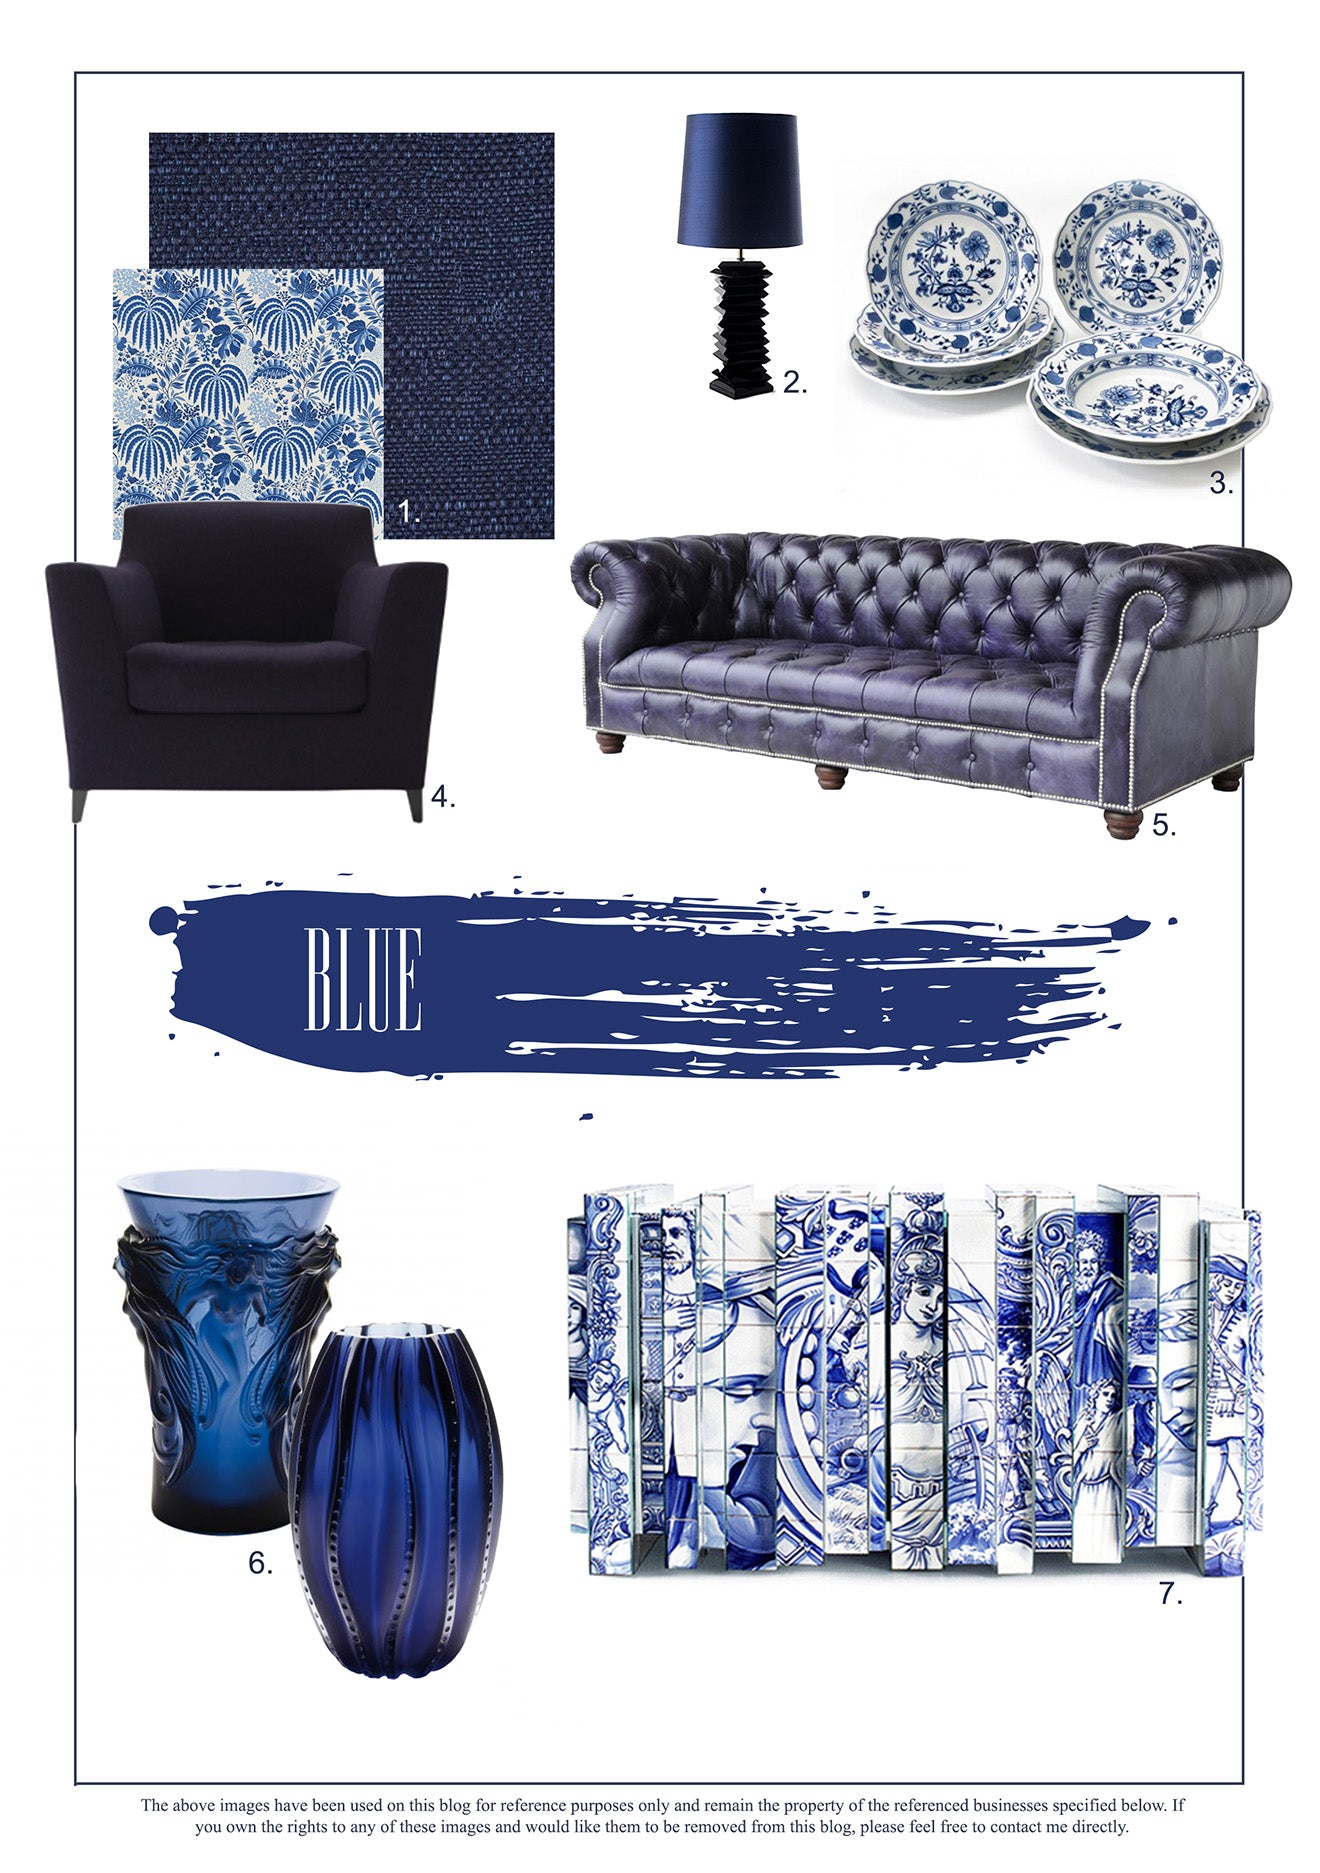 Blue Interior Design Trends for the Home